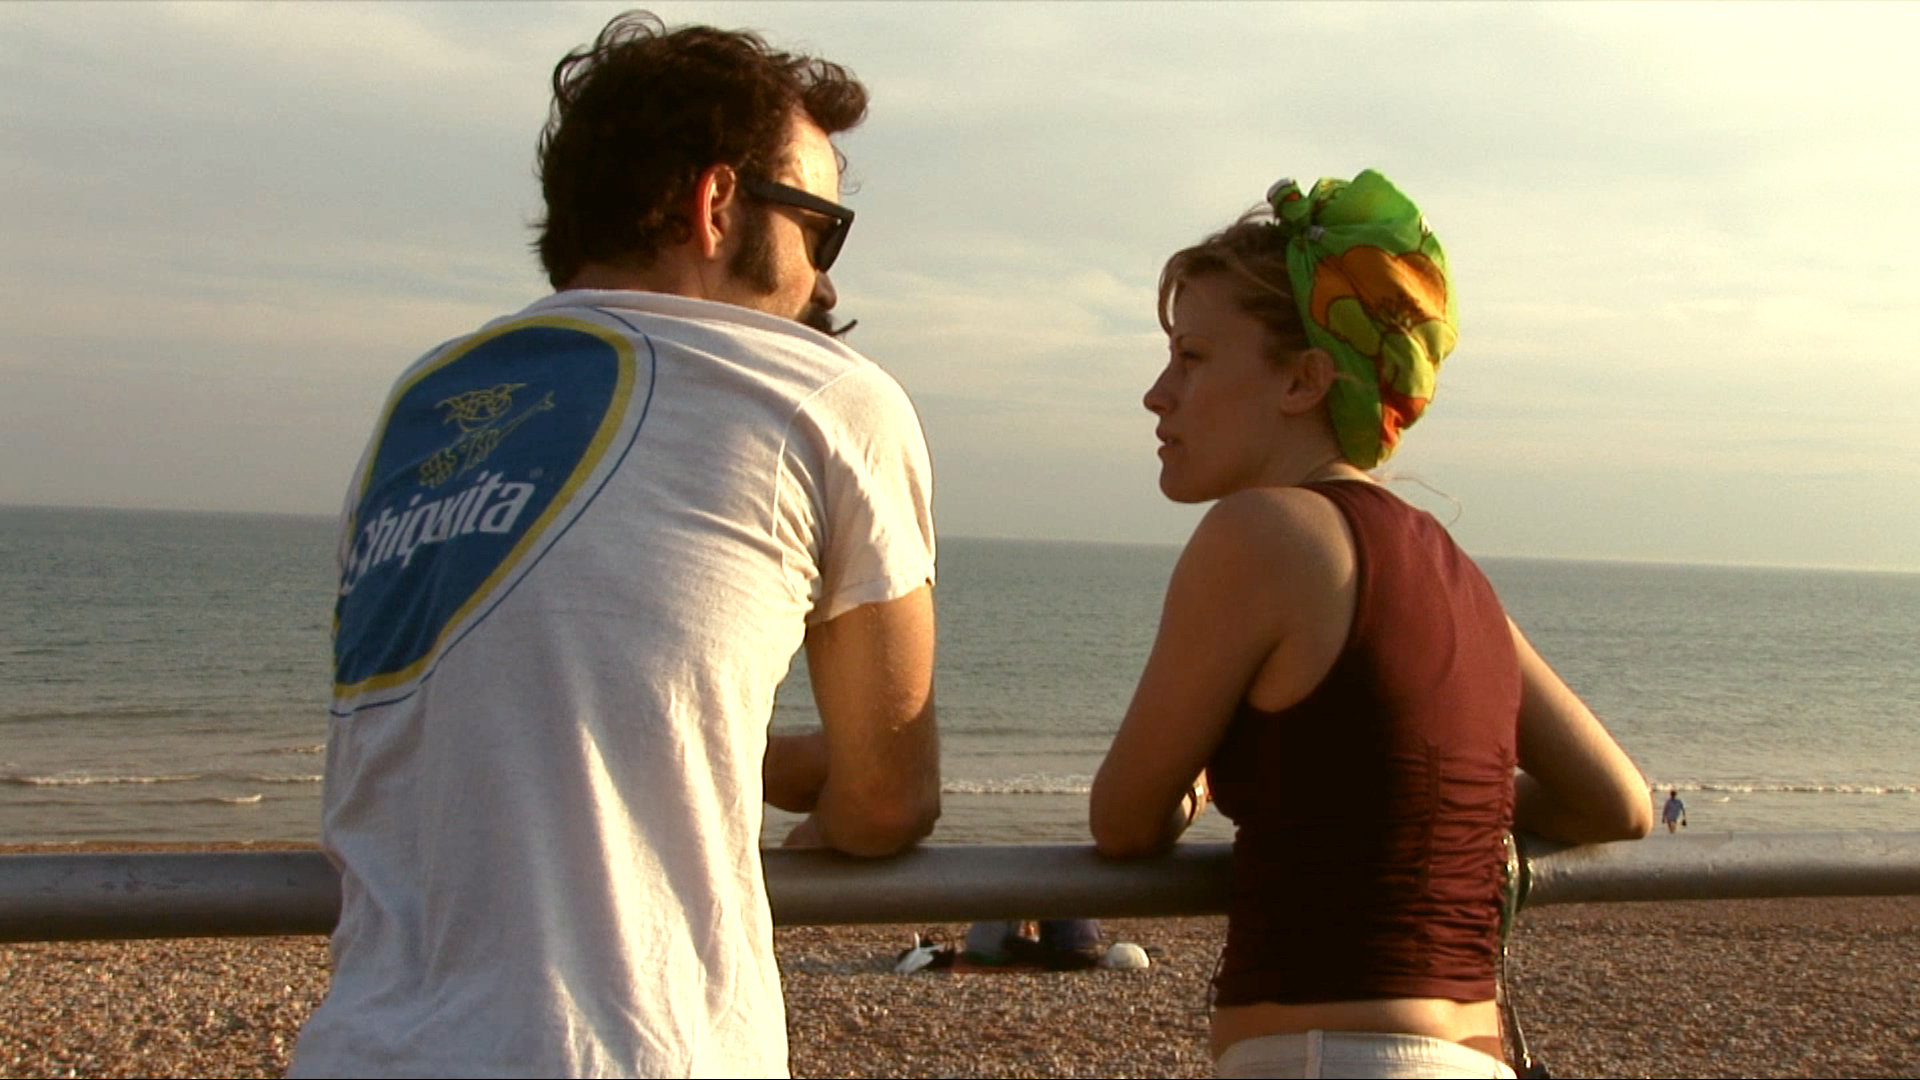 Trixie & Monkey at Brighton Beach, England discussing their first international show, 2008, Film Still by Lotfy Nathan